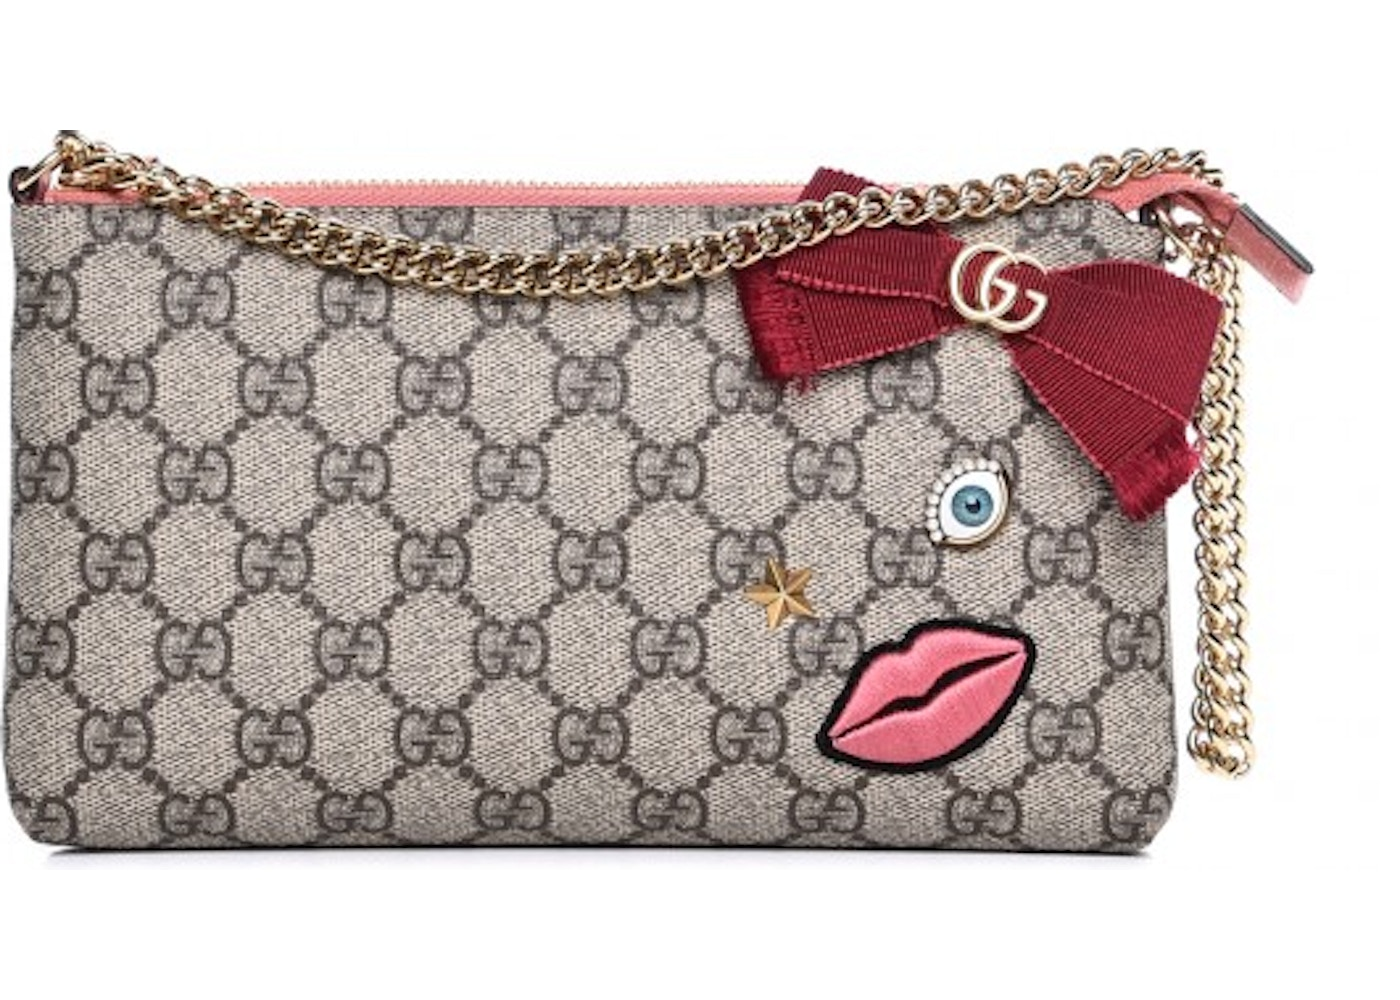 4d6f0886e Gucci Chain Wrist Wallet Monogram GG Embroidered Face Pink ...